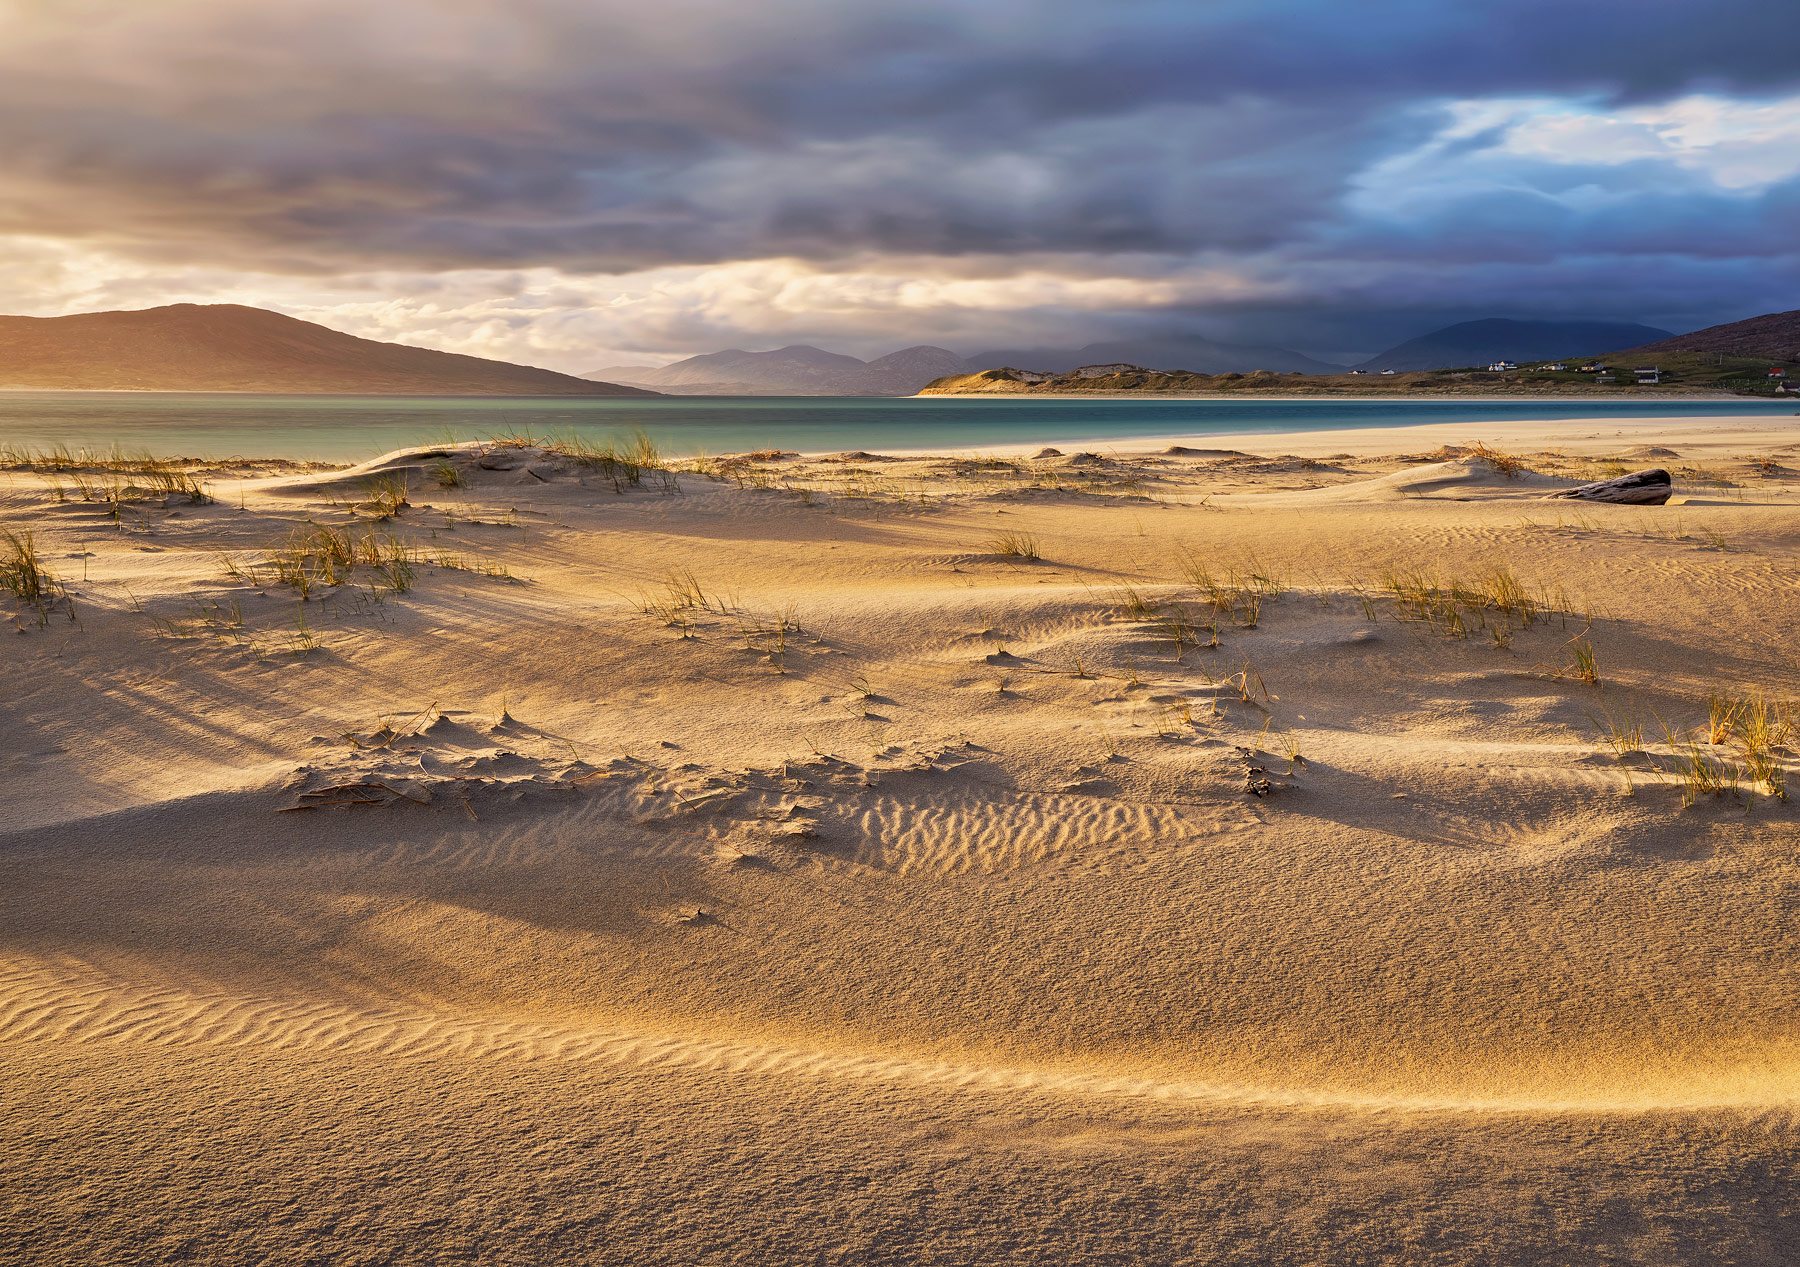 Afternoon sunlight grazes the sand beds adjacent to the Seilebost dunes at Seilebost beach in Luskentyre bay, Harris